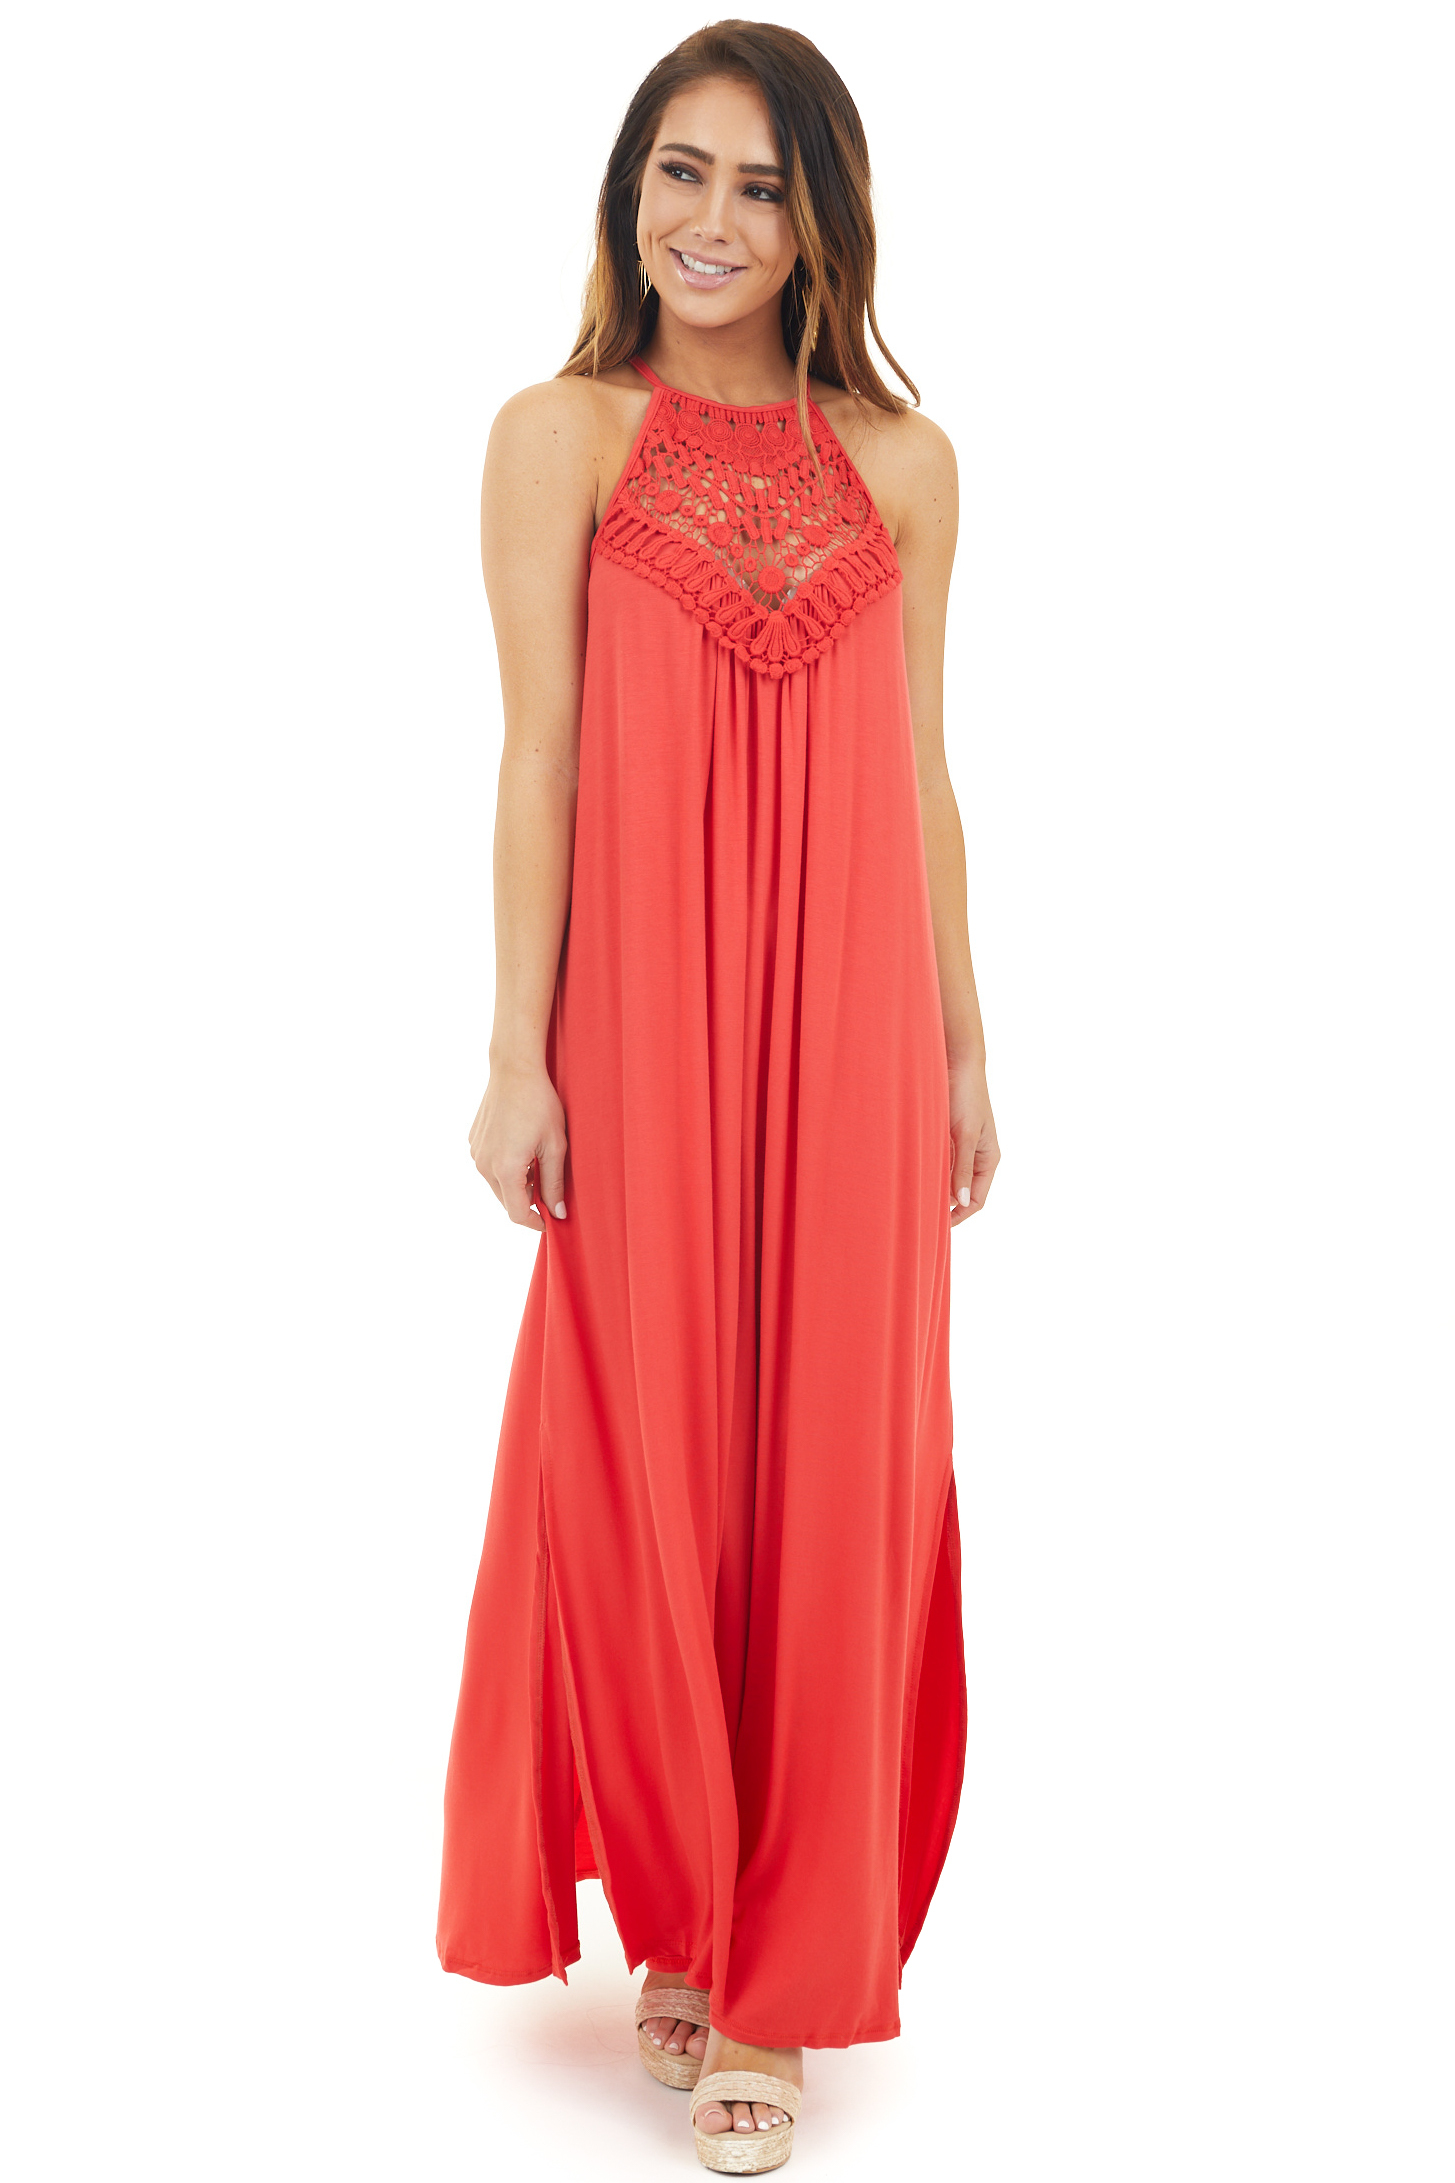 Tomato Red Spaghetti Strap Maxi Dress with Front Lace Detail